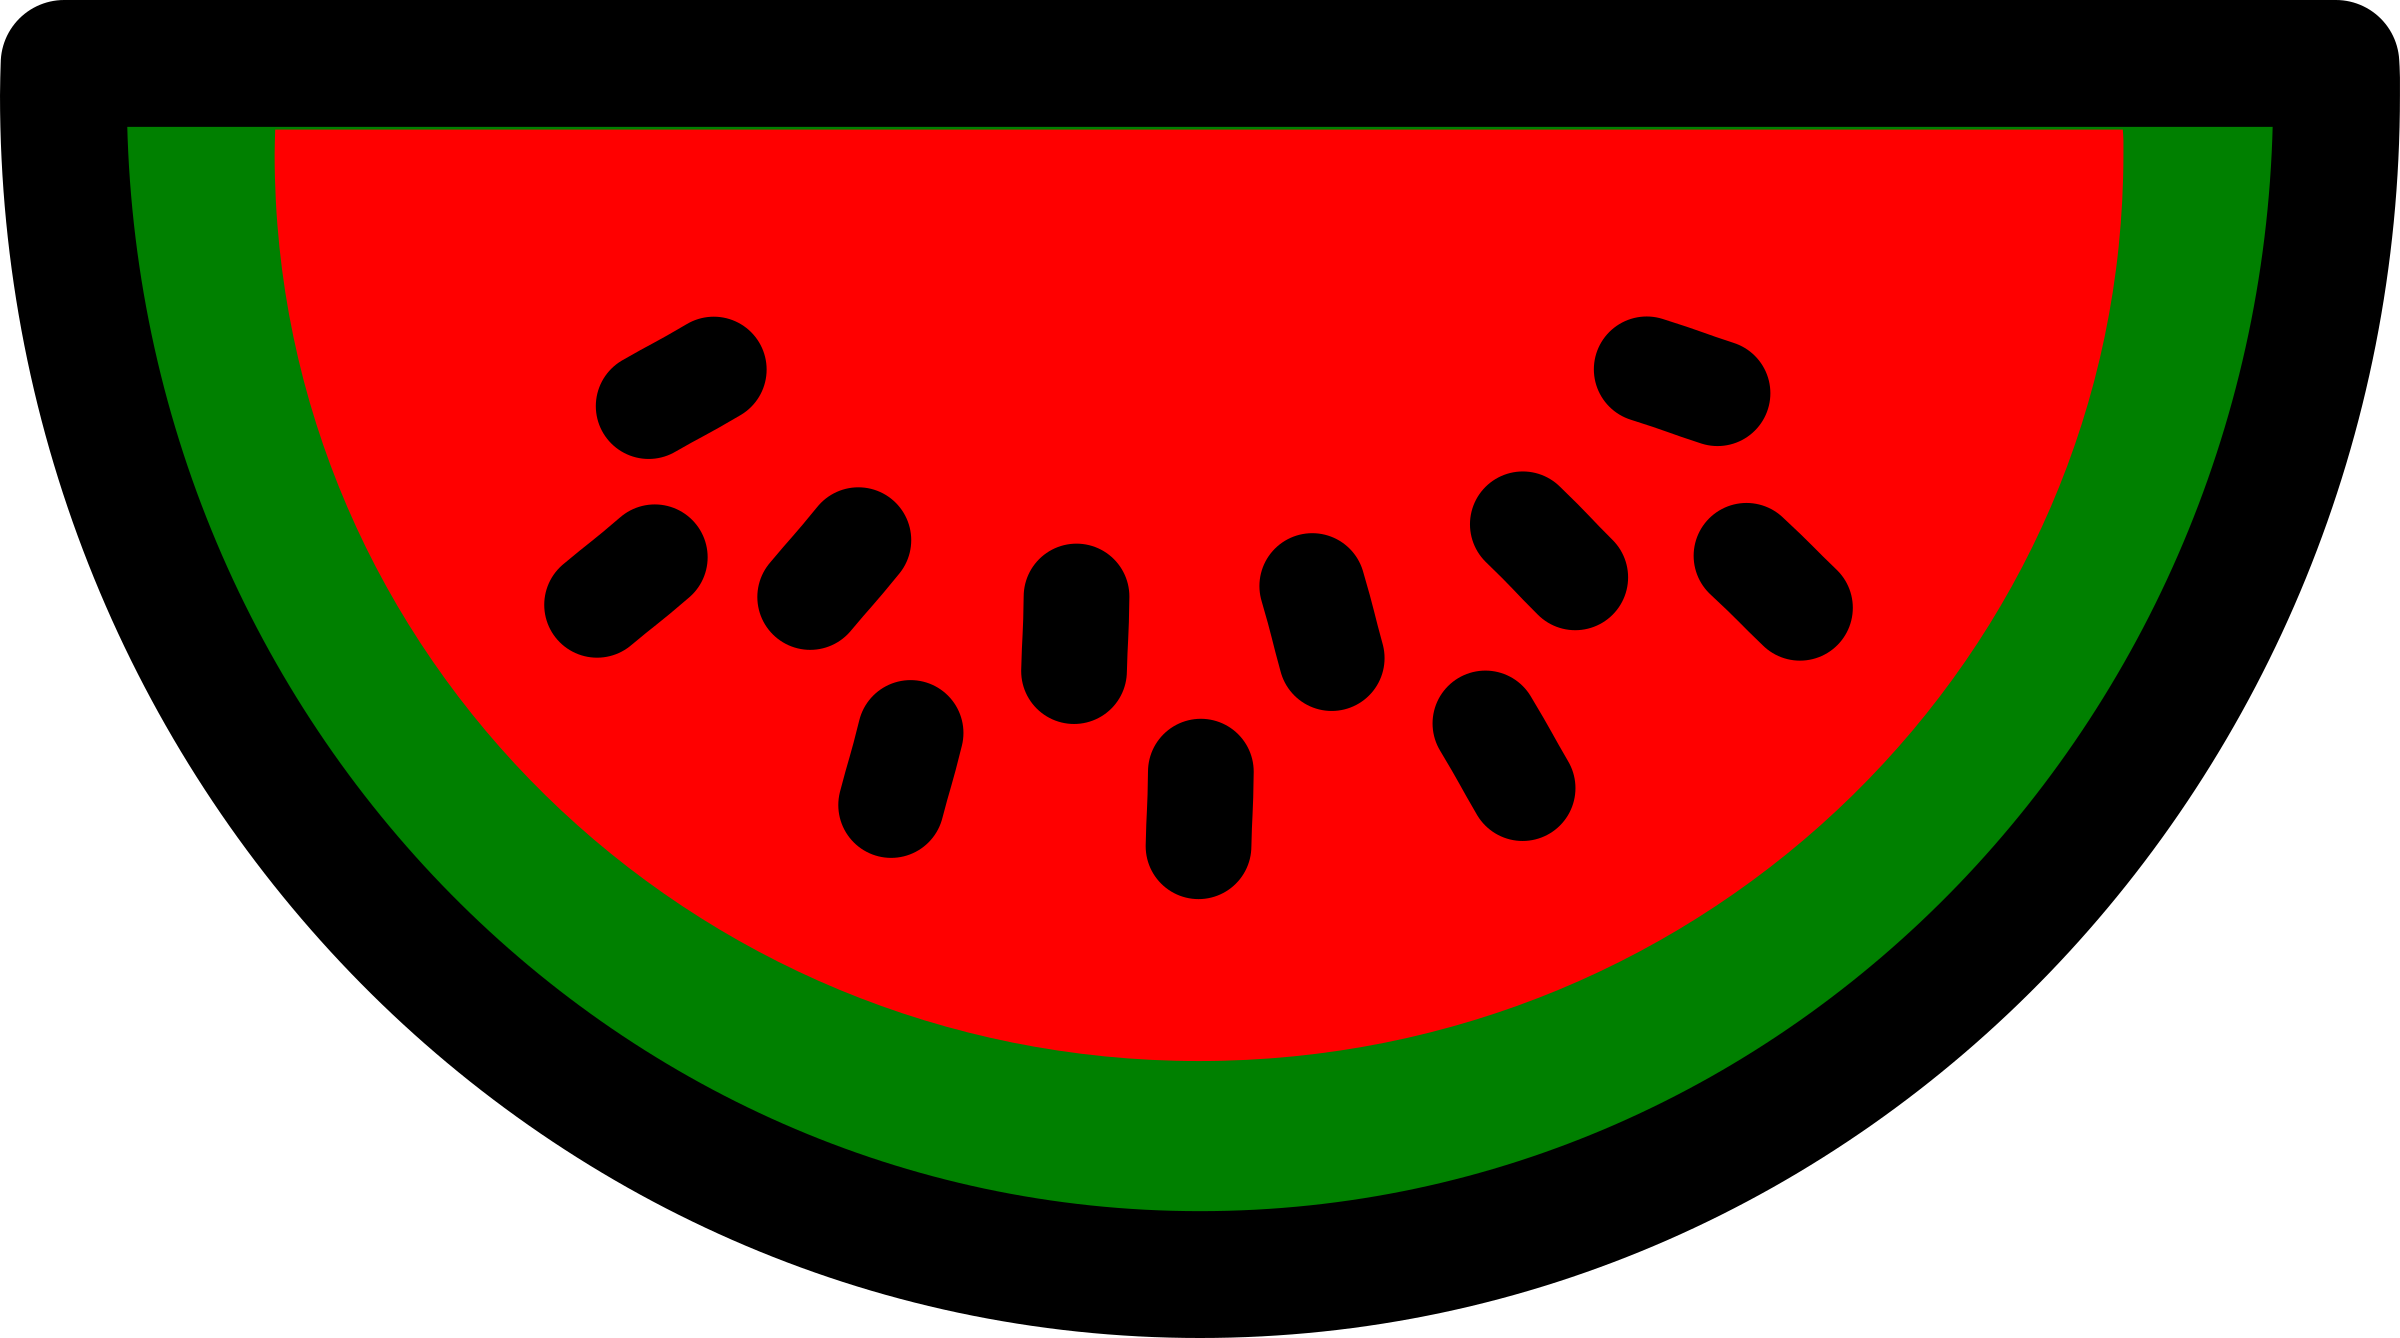 Watermelon icon by pitr